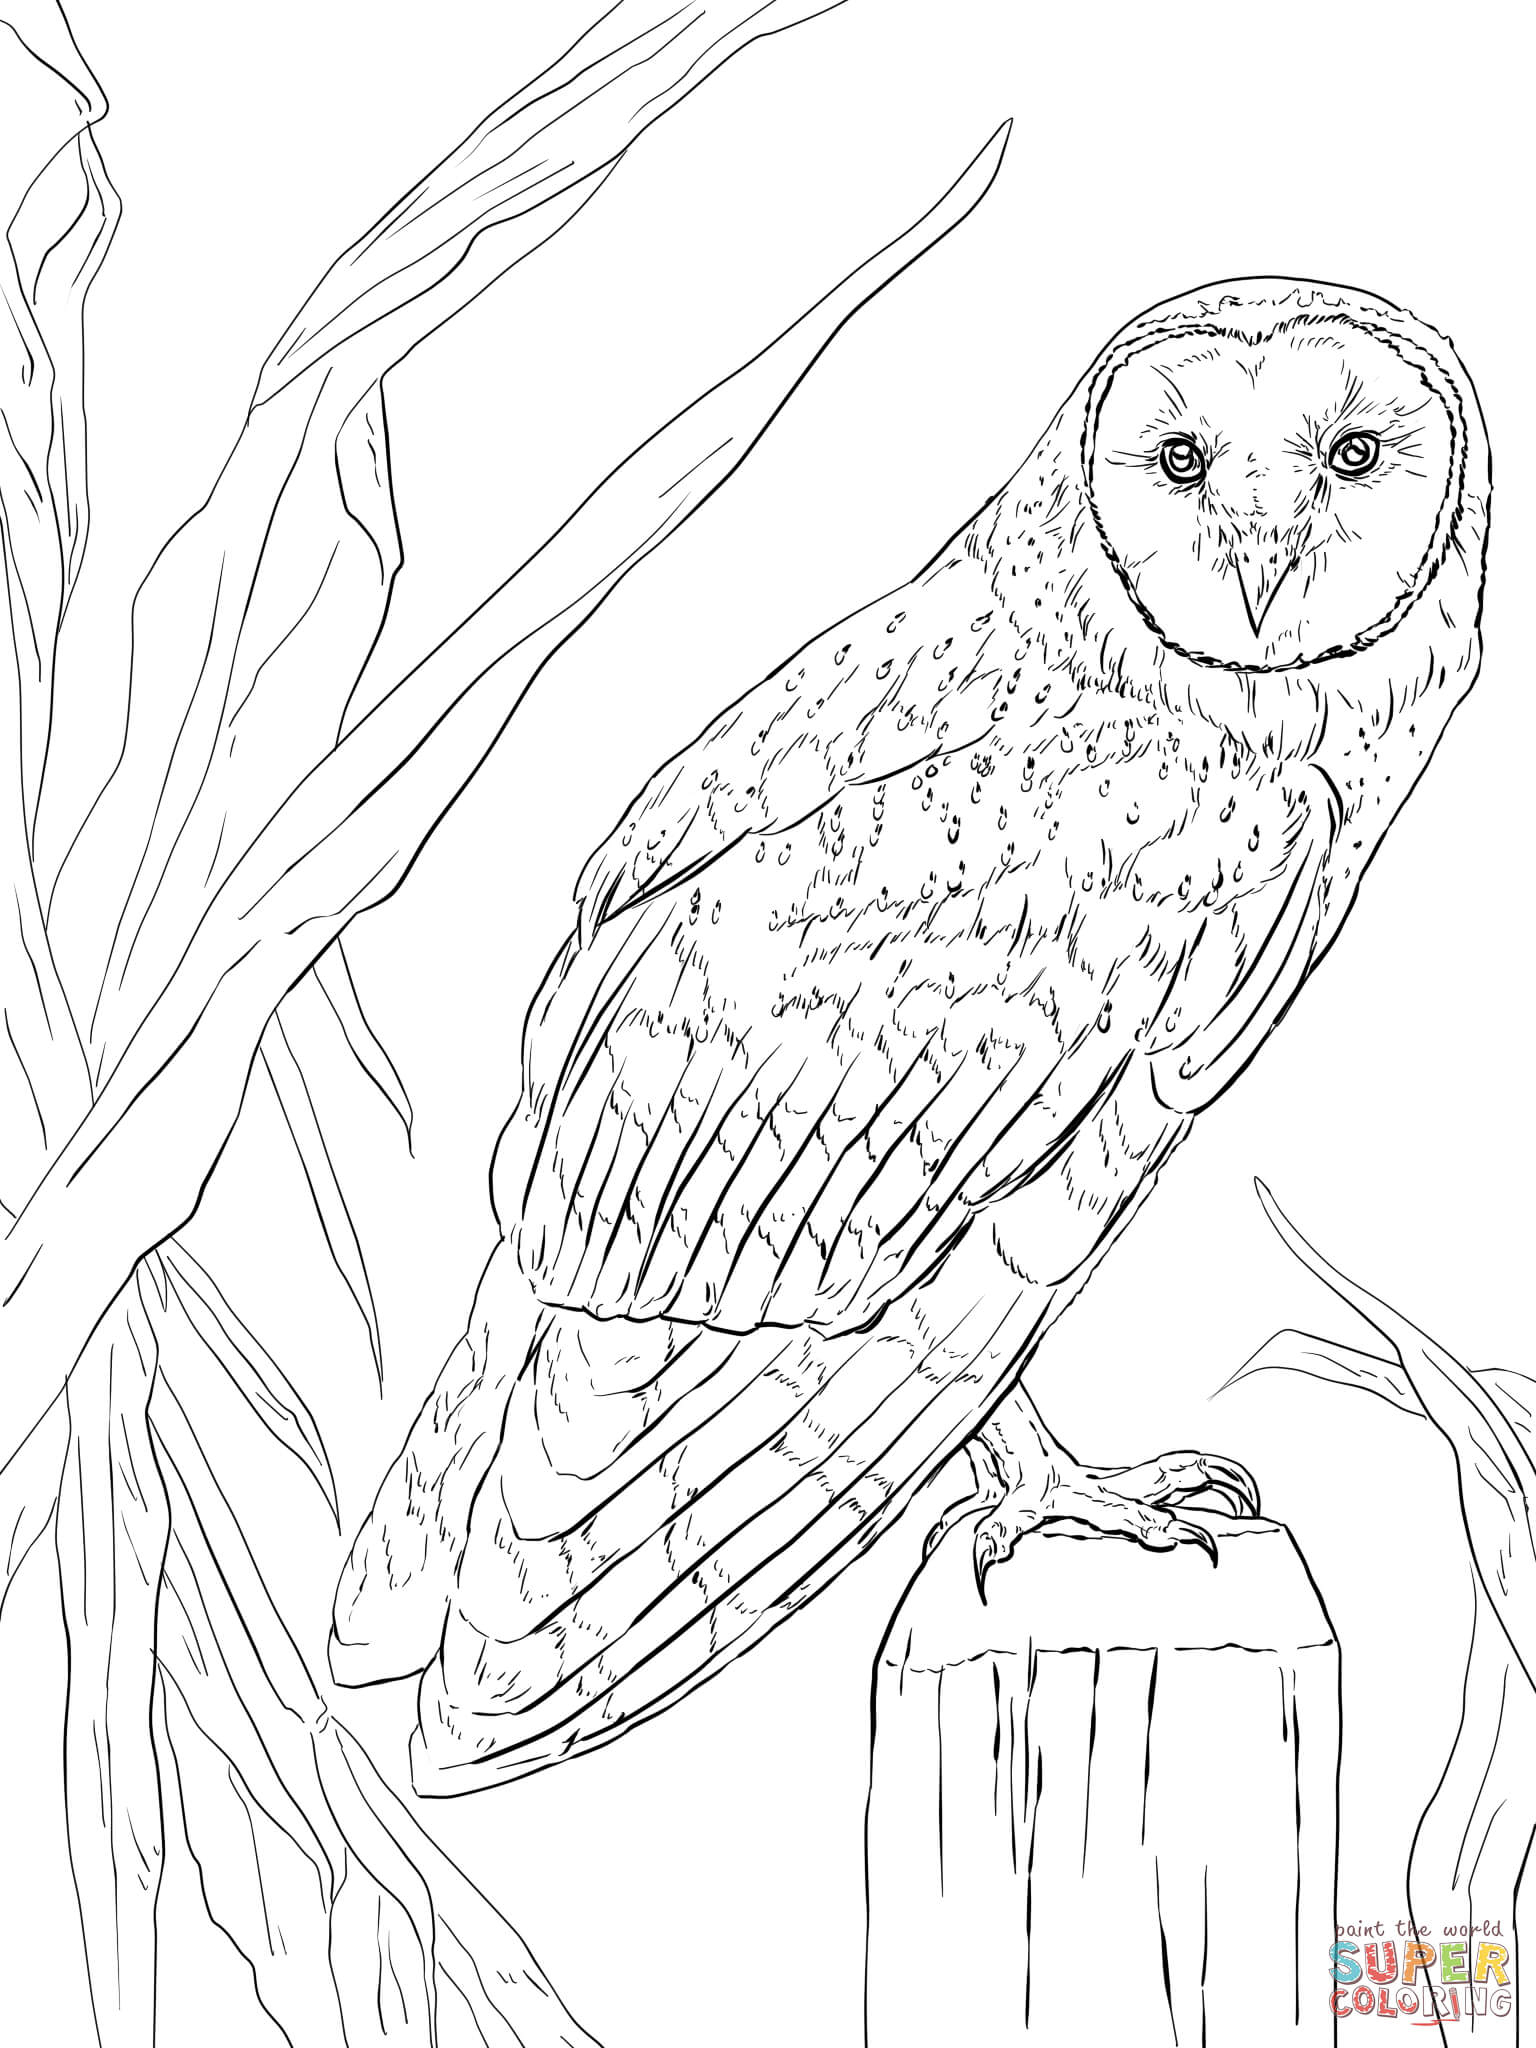 Barn Owl Coloring Page | Free Printable Coloring Pages - Free Printable Barn Coloring Pages